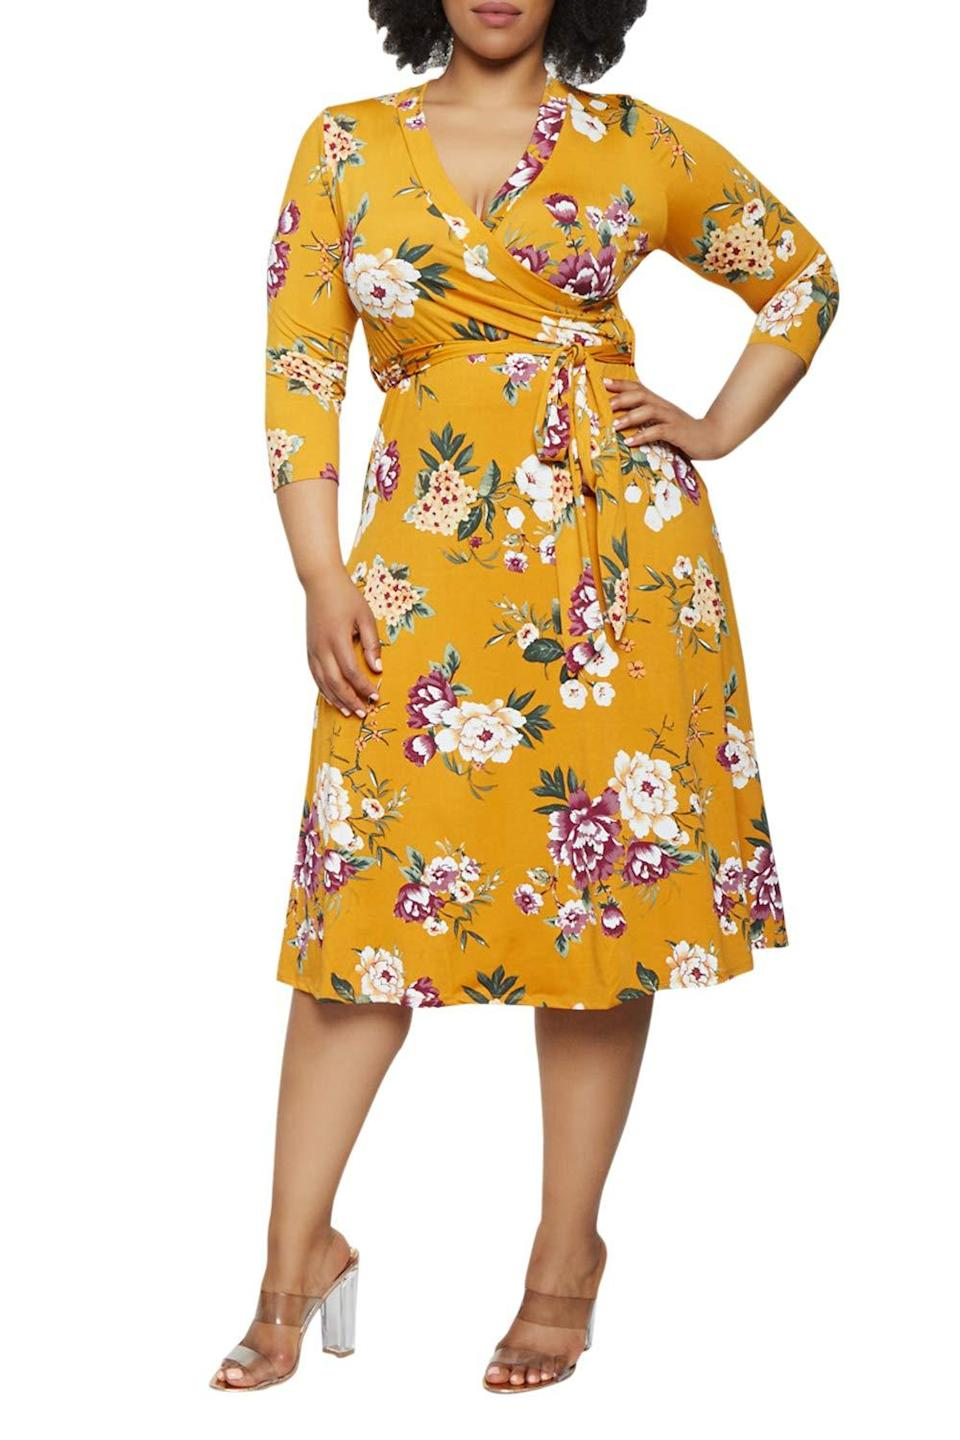 """<br><br><strong>Pink Queen</strong> Faux Wrap Floral Dress with Belt, $, available at <a href=""""https://amzn.to/2ZI5LJd"""" rel=""""nofollow noopener"""" target=""""_blank"""" data-ylk=""""slk:Amazon Fashion"""" class=""""link rapid-noclick-resp"""">Amazon Fashion</a>"""